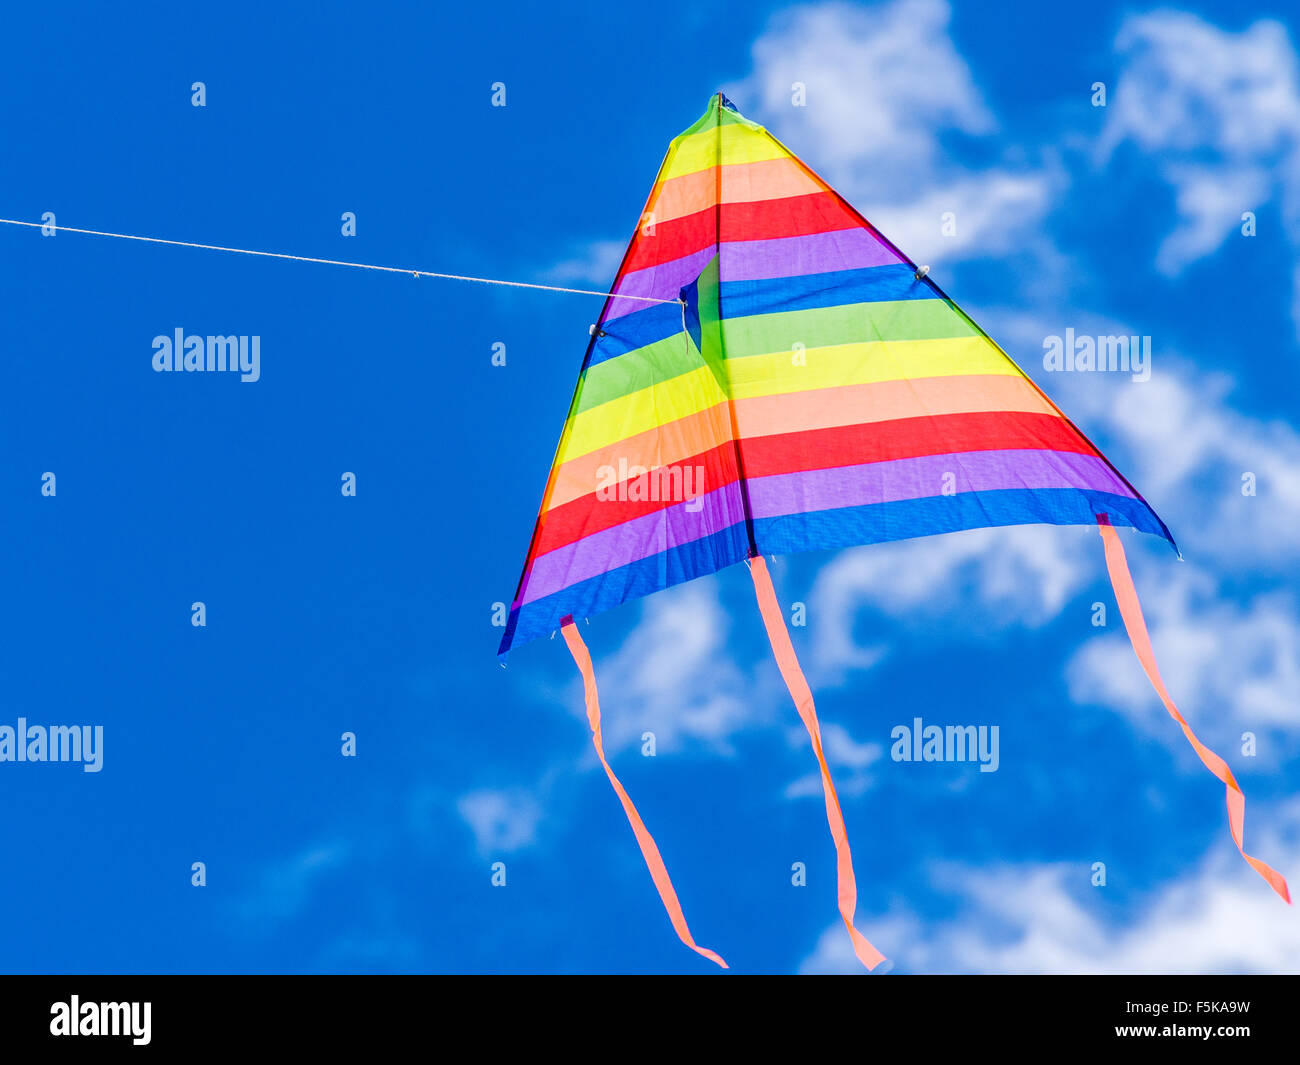 Wind kite flying in a blue sky - Stock Image